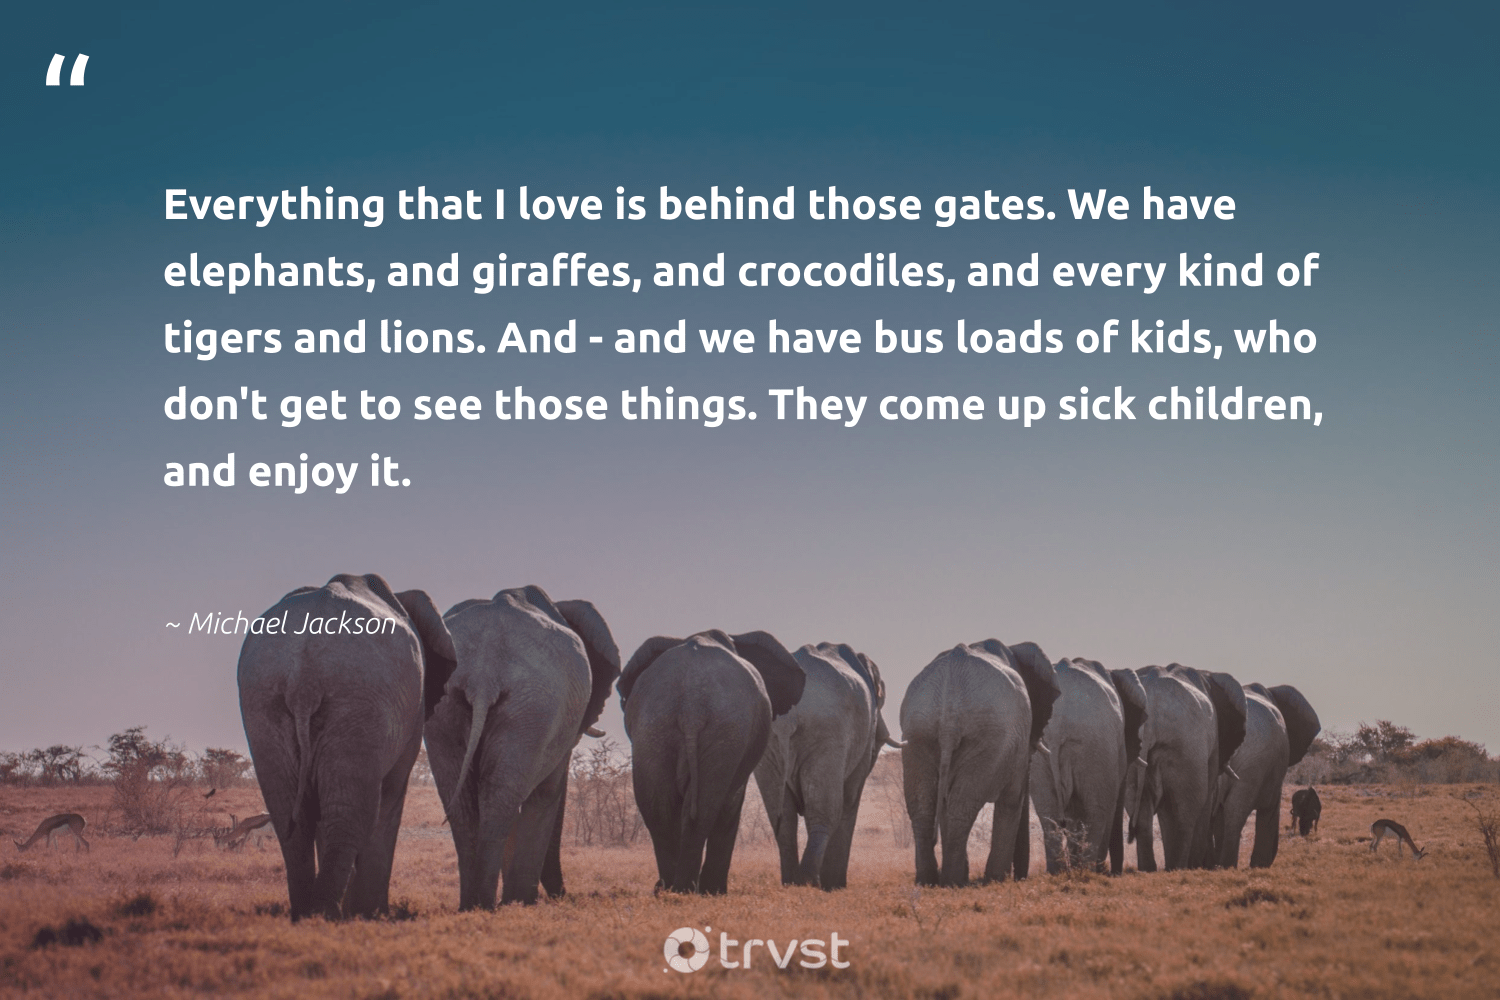 """""""Everything that I love is behind those gates. We have elephants, and giraffes, and crocodiles, and every kind of tigers and lions. And - and we have bus loads of kids, who don't get to see those things. They come up sick children, and enjoy it.""""  - Michael Jackson #trvst #quotes #love #children #elephants #savetheelephants #beinspired #wildanimals #ecoconscious #animals #thinkgreen #conservation"""